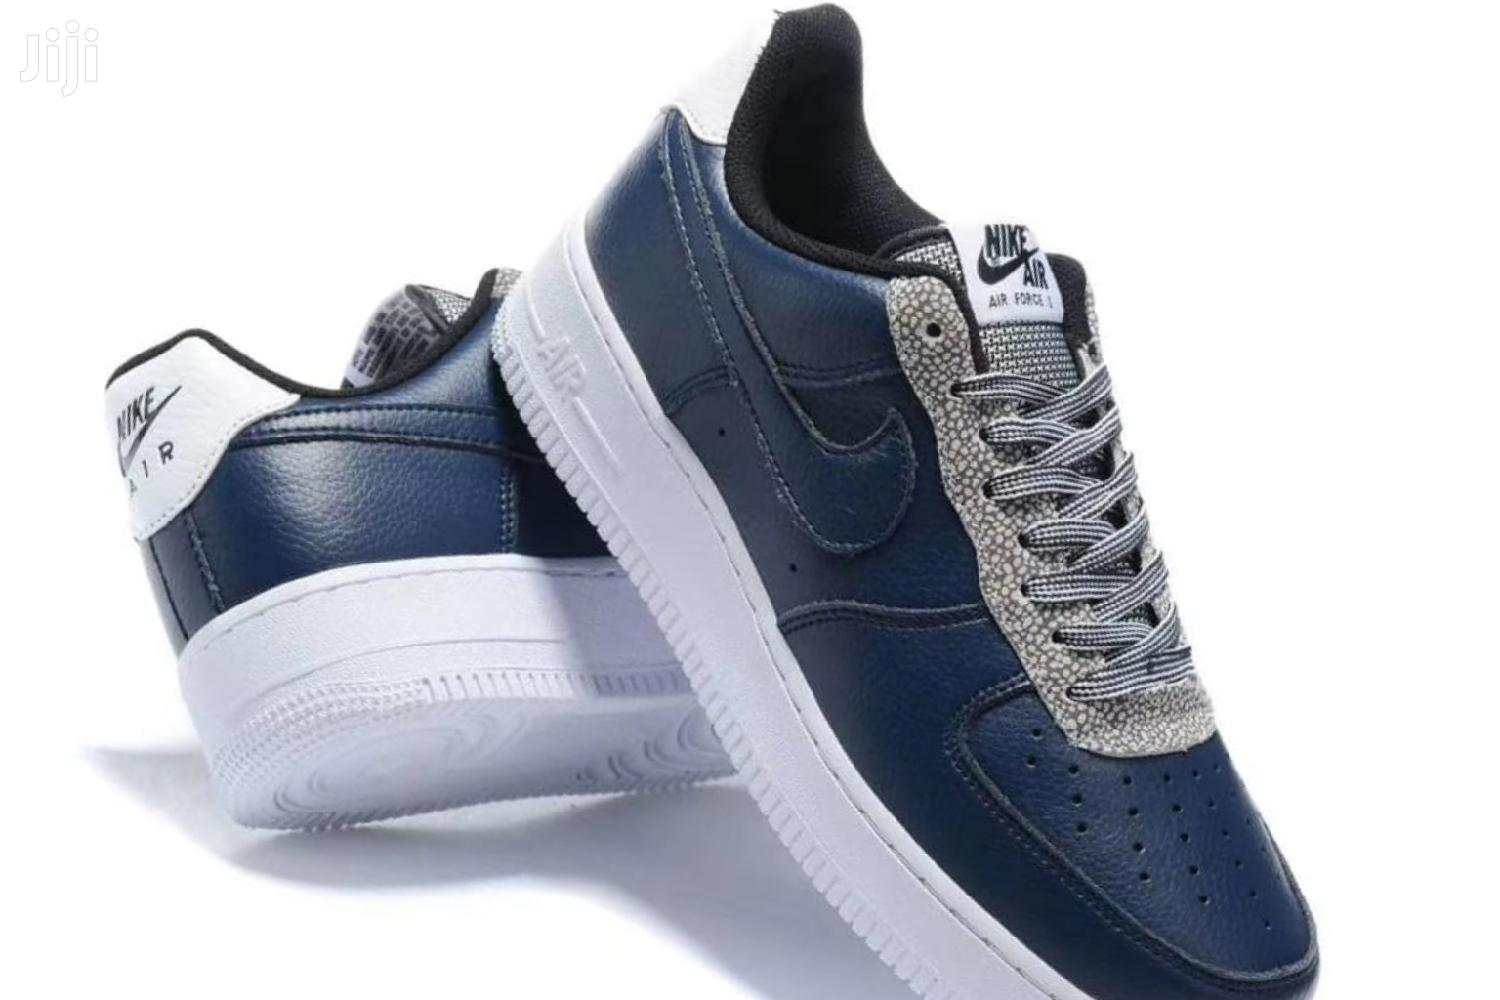 Classic Nike Airforce Sneakers